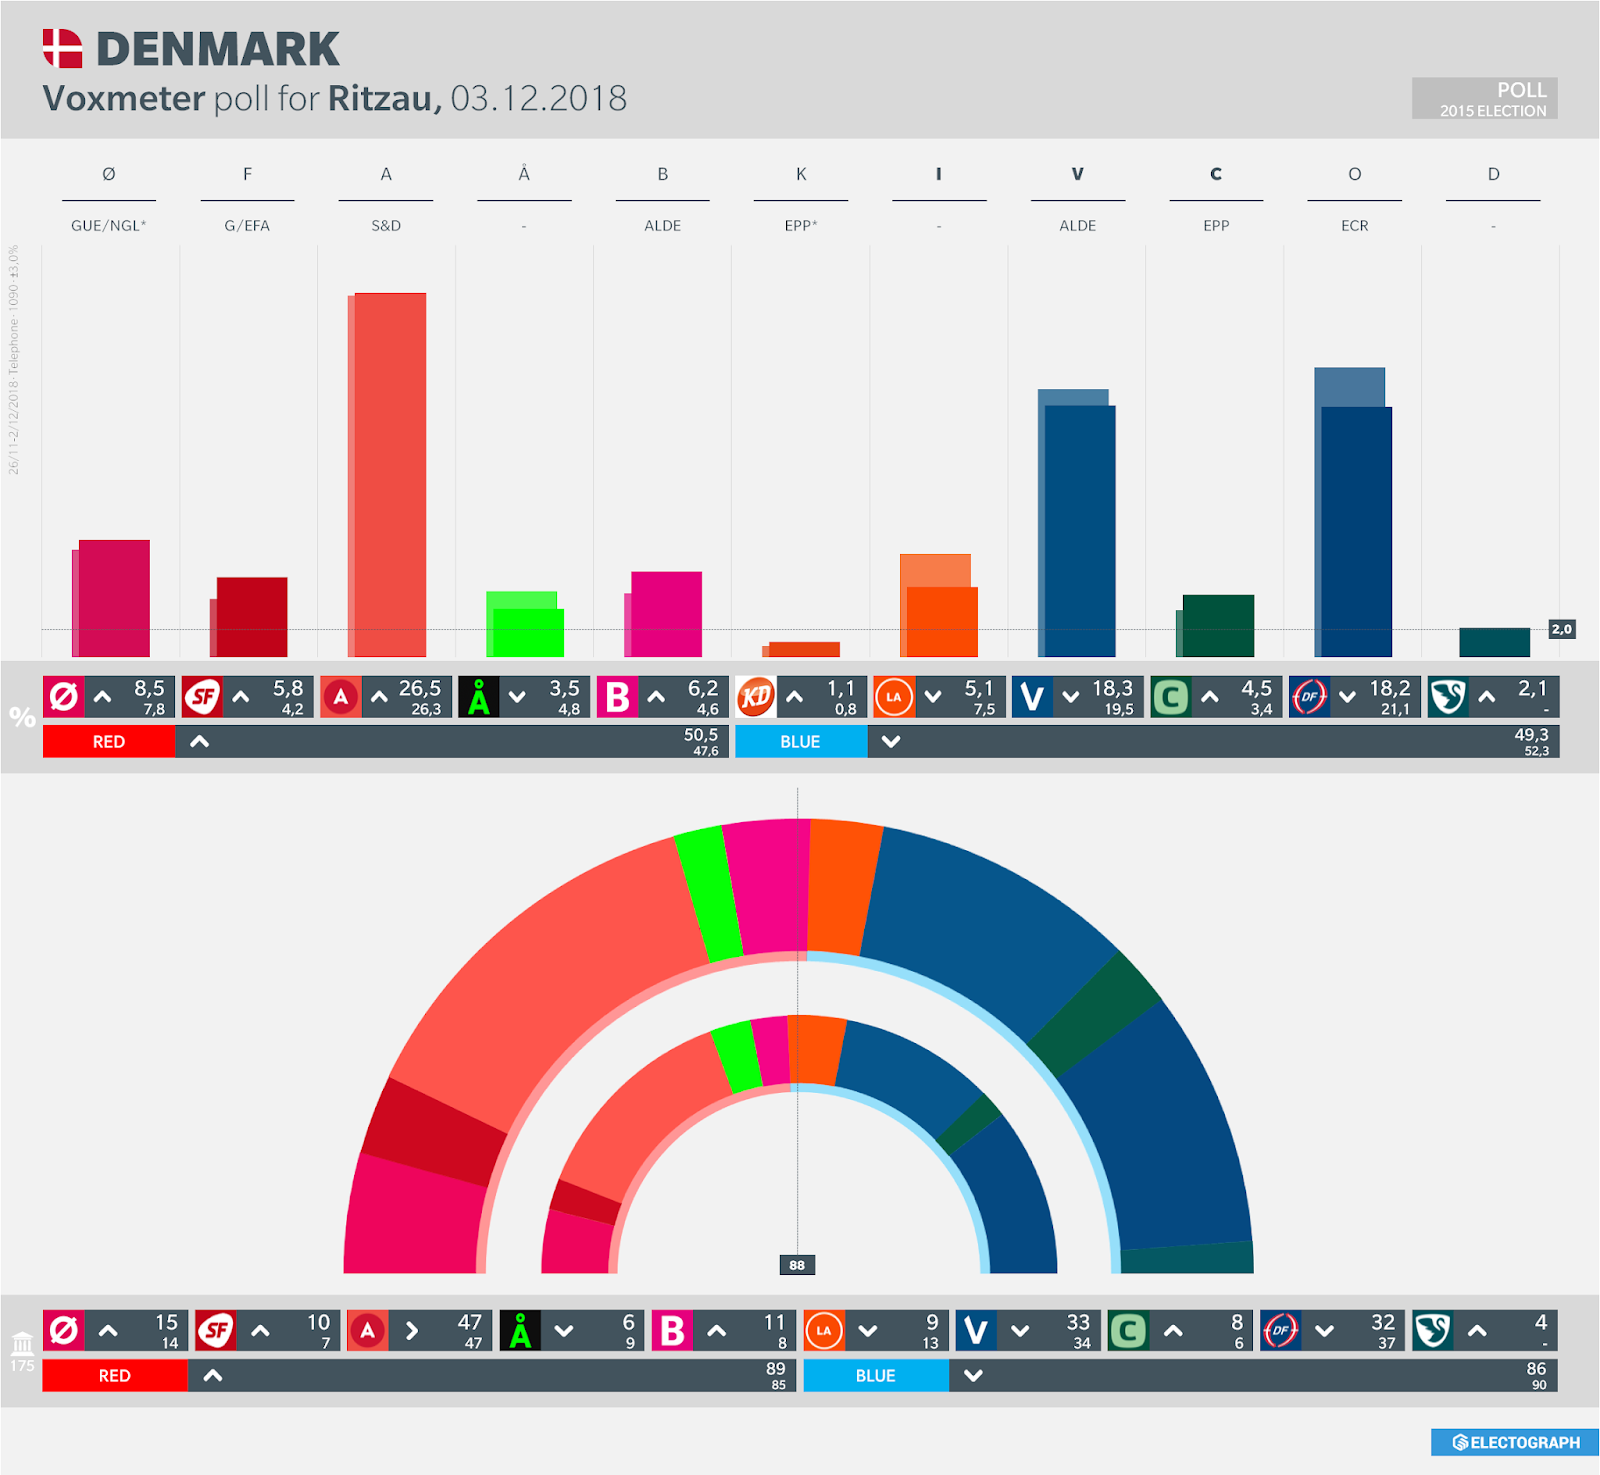 DENMARK: Voxmeter poll chart for Ritzau, 3 December 2018